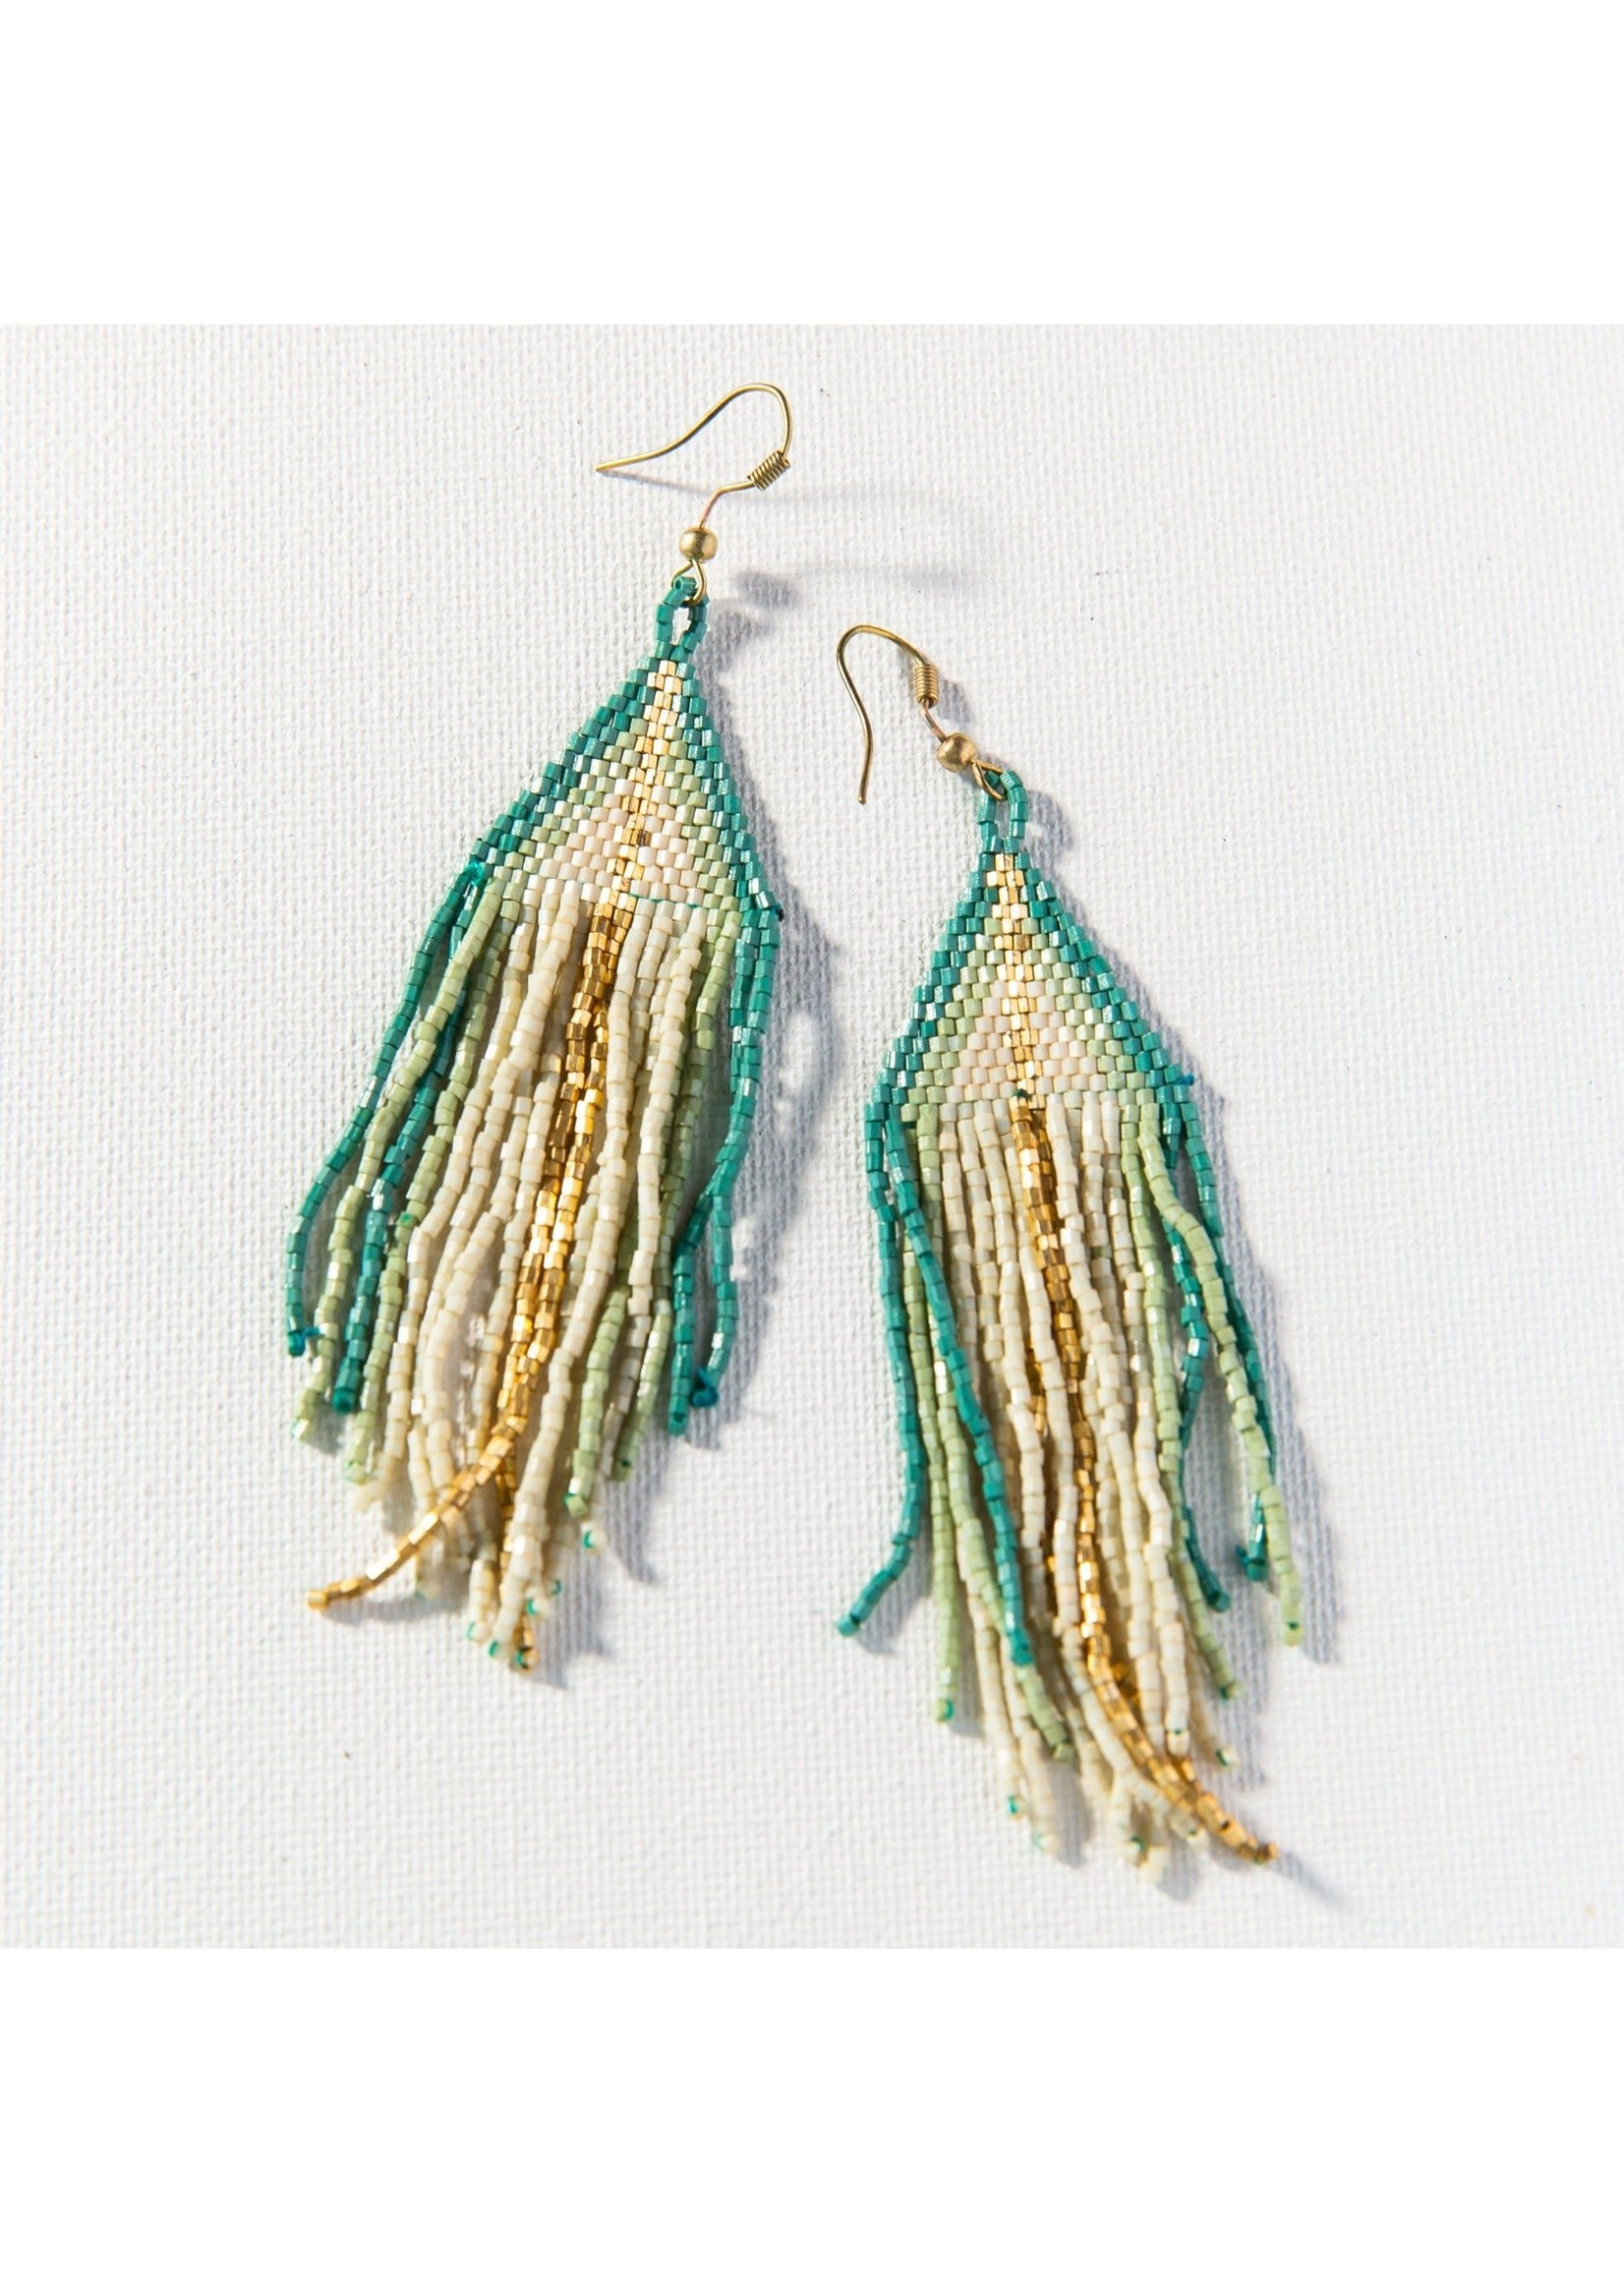 Ink + Alloy Ivory, Teal, Mint, Gold Ombre Fringe Earrings